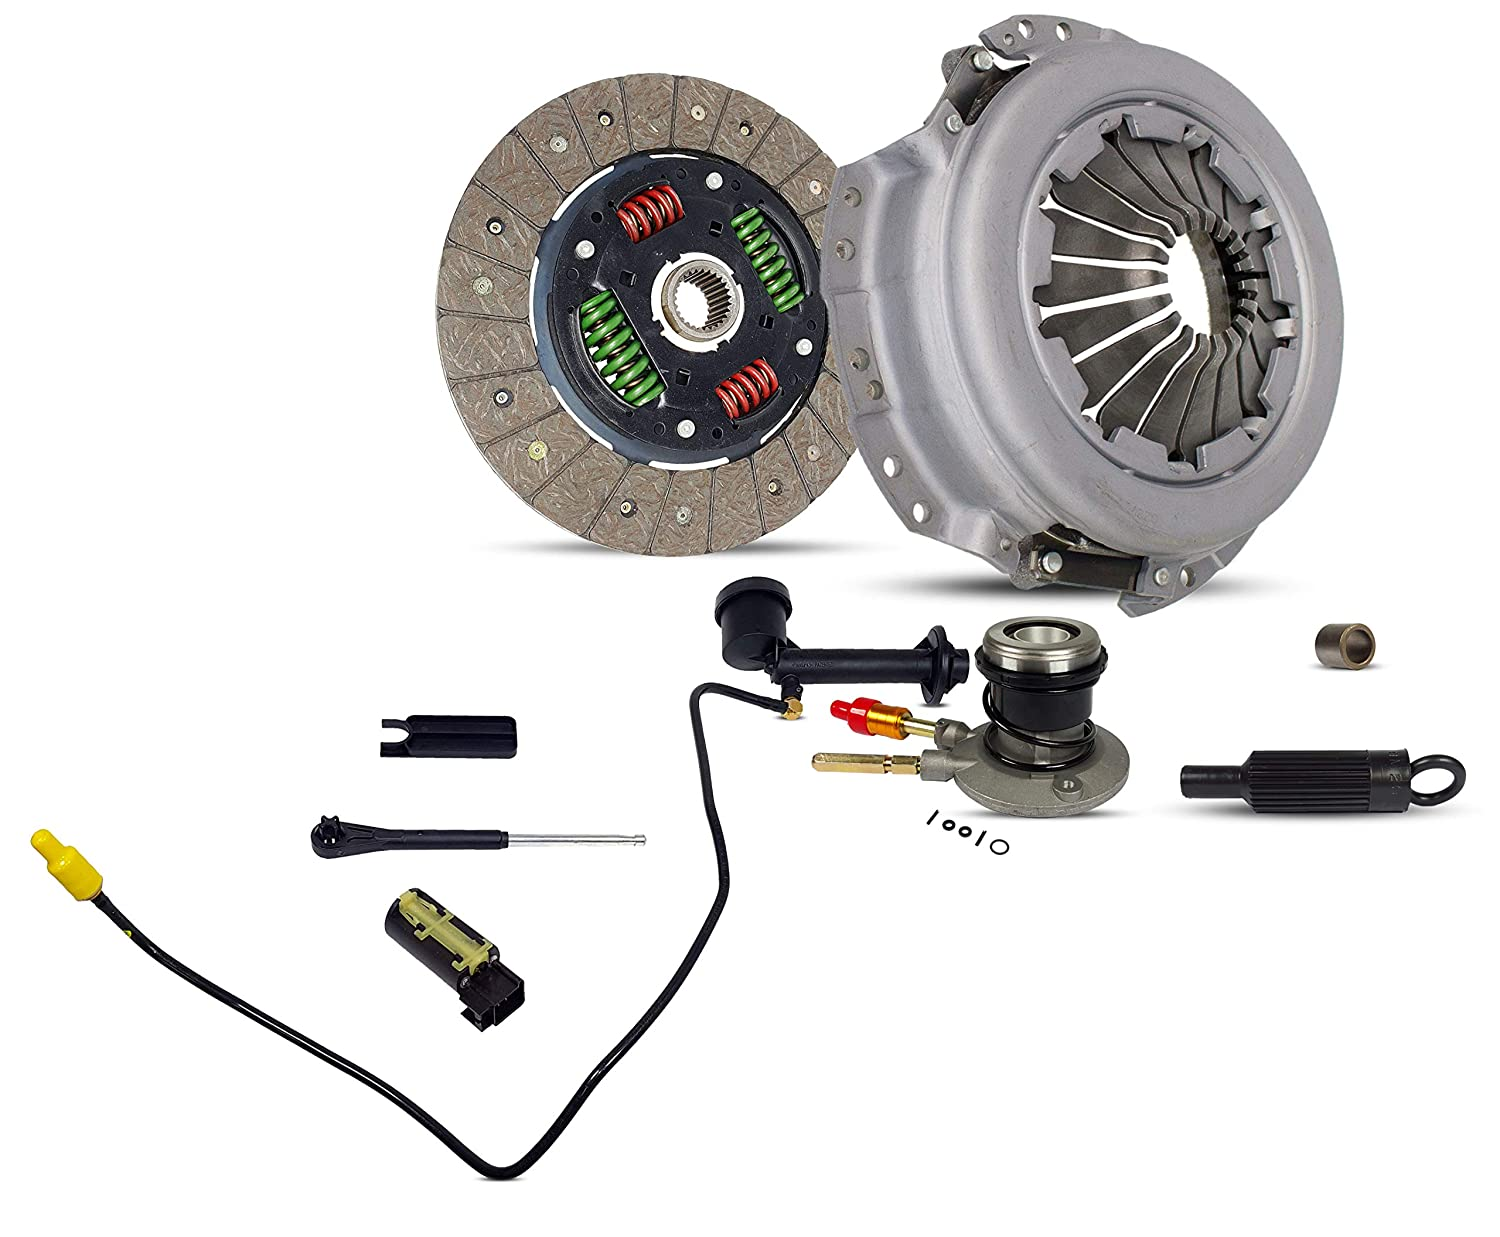 Clutch Kit Pre Filled Master And Slave Cylinders with Line Works With Chevrolet S10 Gmc Sonoma Base Ls Xtreme Sl Sle Sls Cab Pickup 1996-2003 2.2L L4 OHV Southeast Clutch